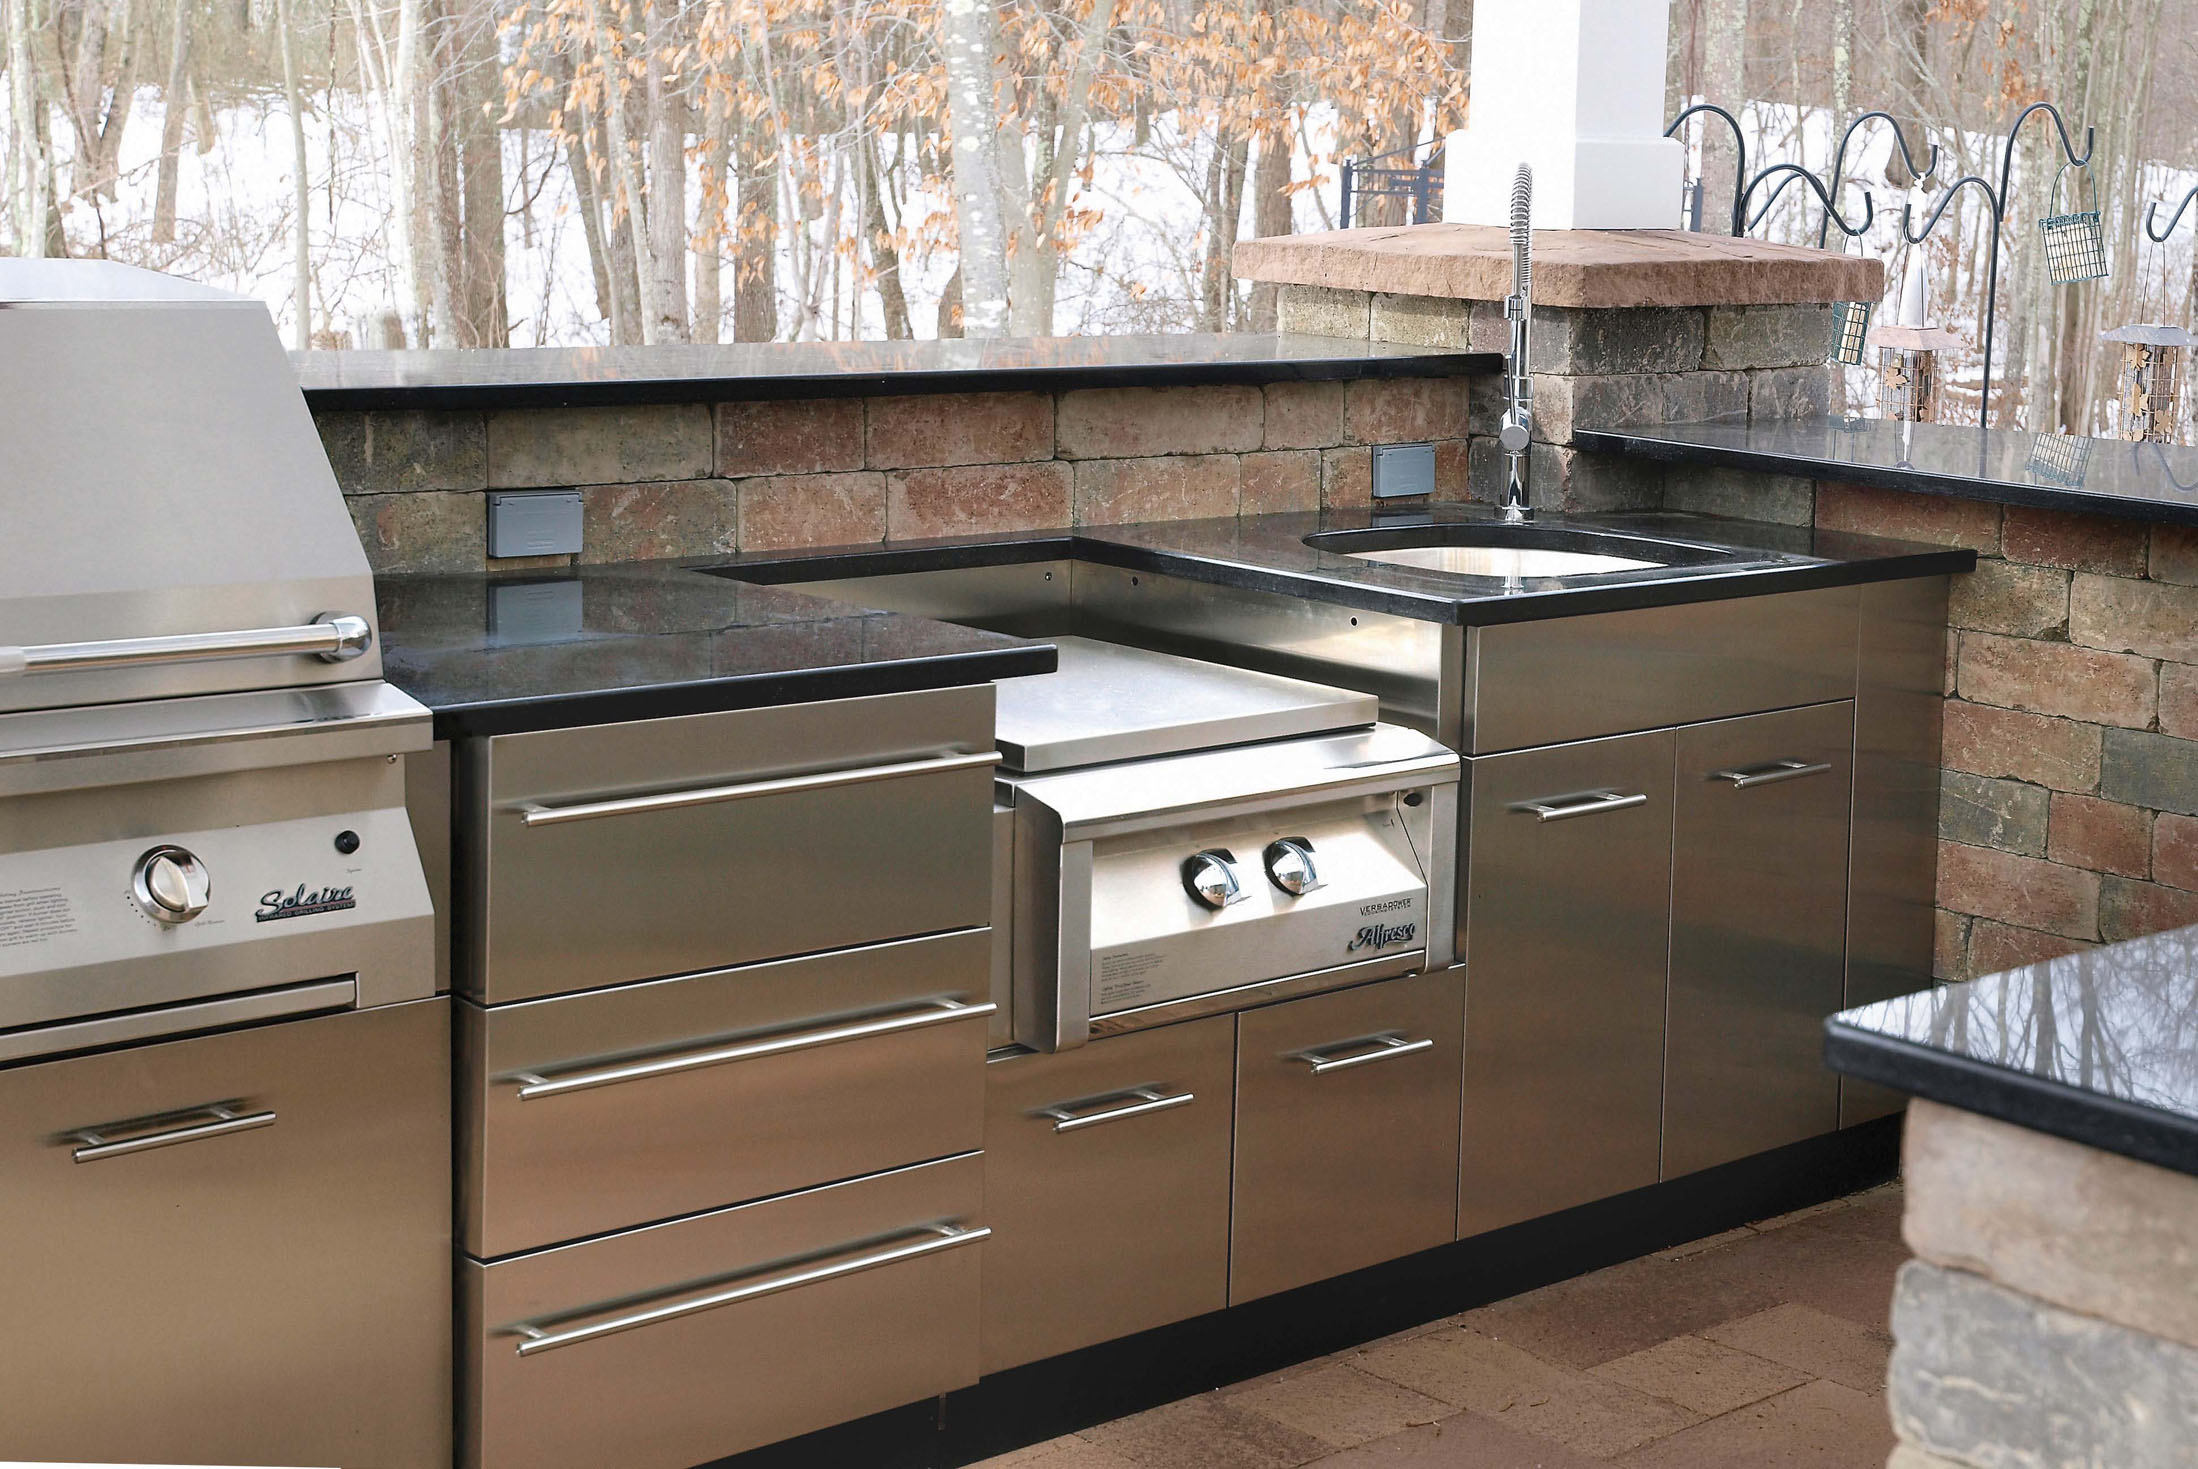 Superbe Outdoor Stainless Kitchen In Winter In CT | Danver Stainless Steel Cabinetry